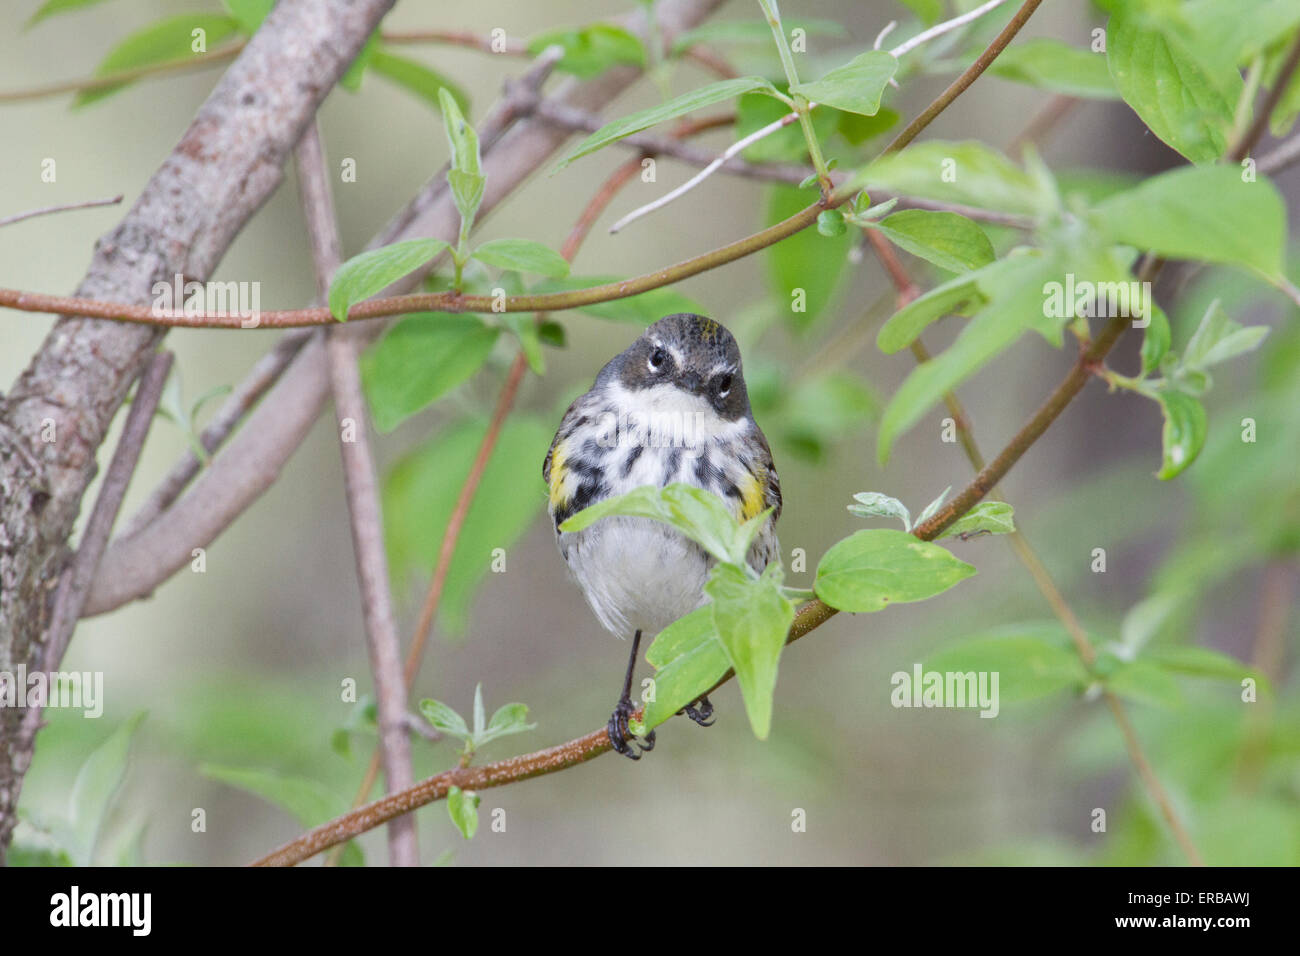 Yellow-rumped warbler (Setophaga coronata ) during the Spring migration, Magee Marsh, Ohio. - Stock Image